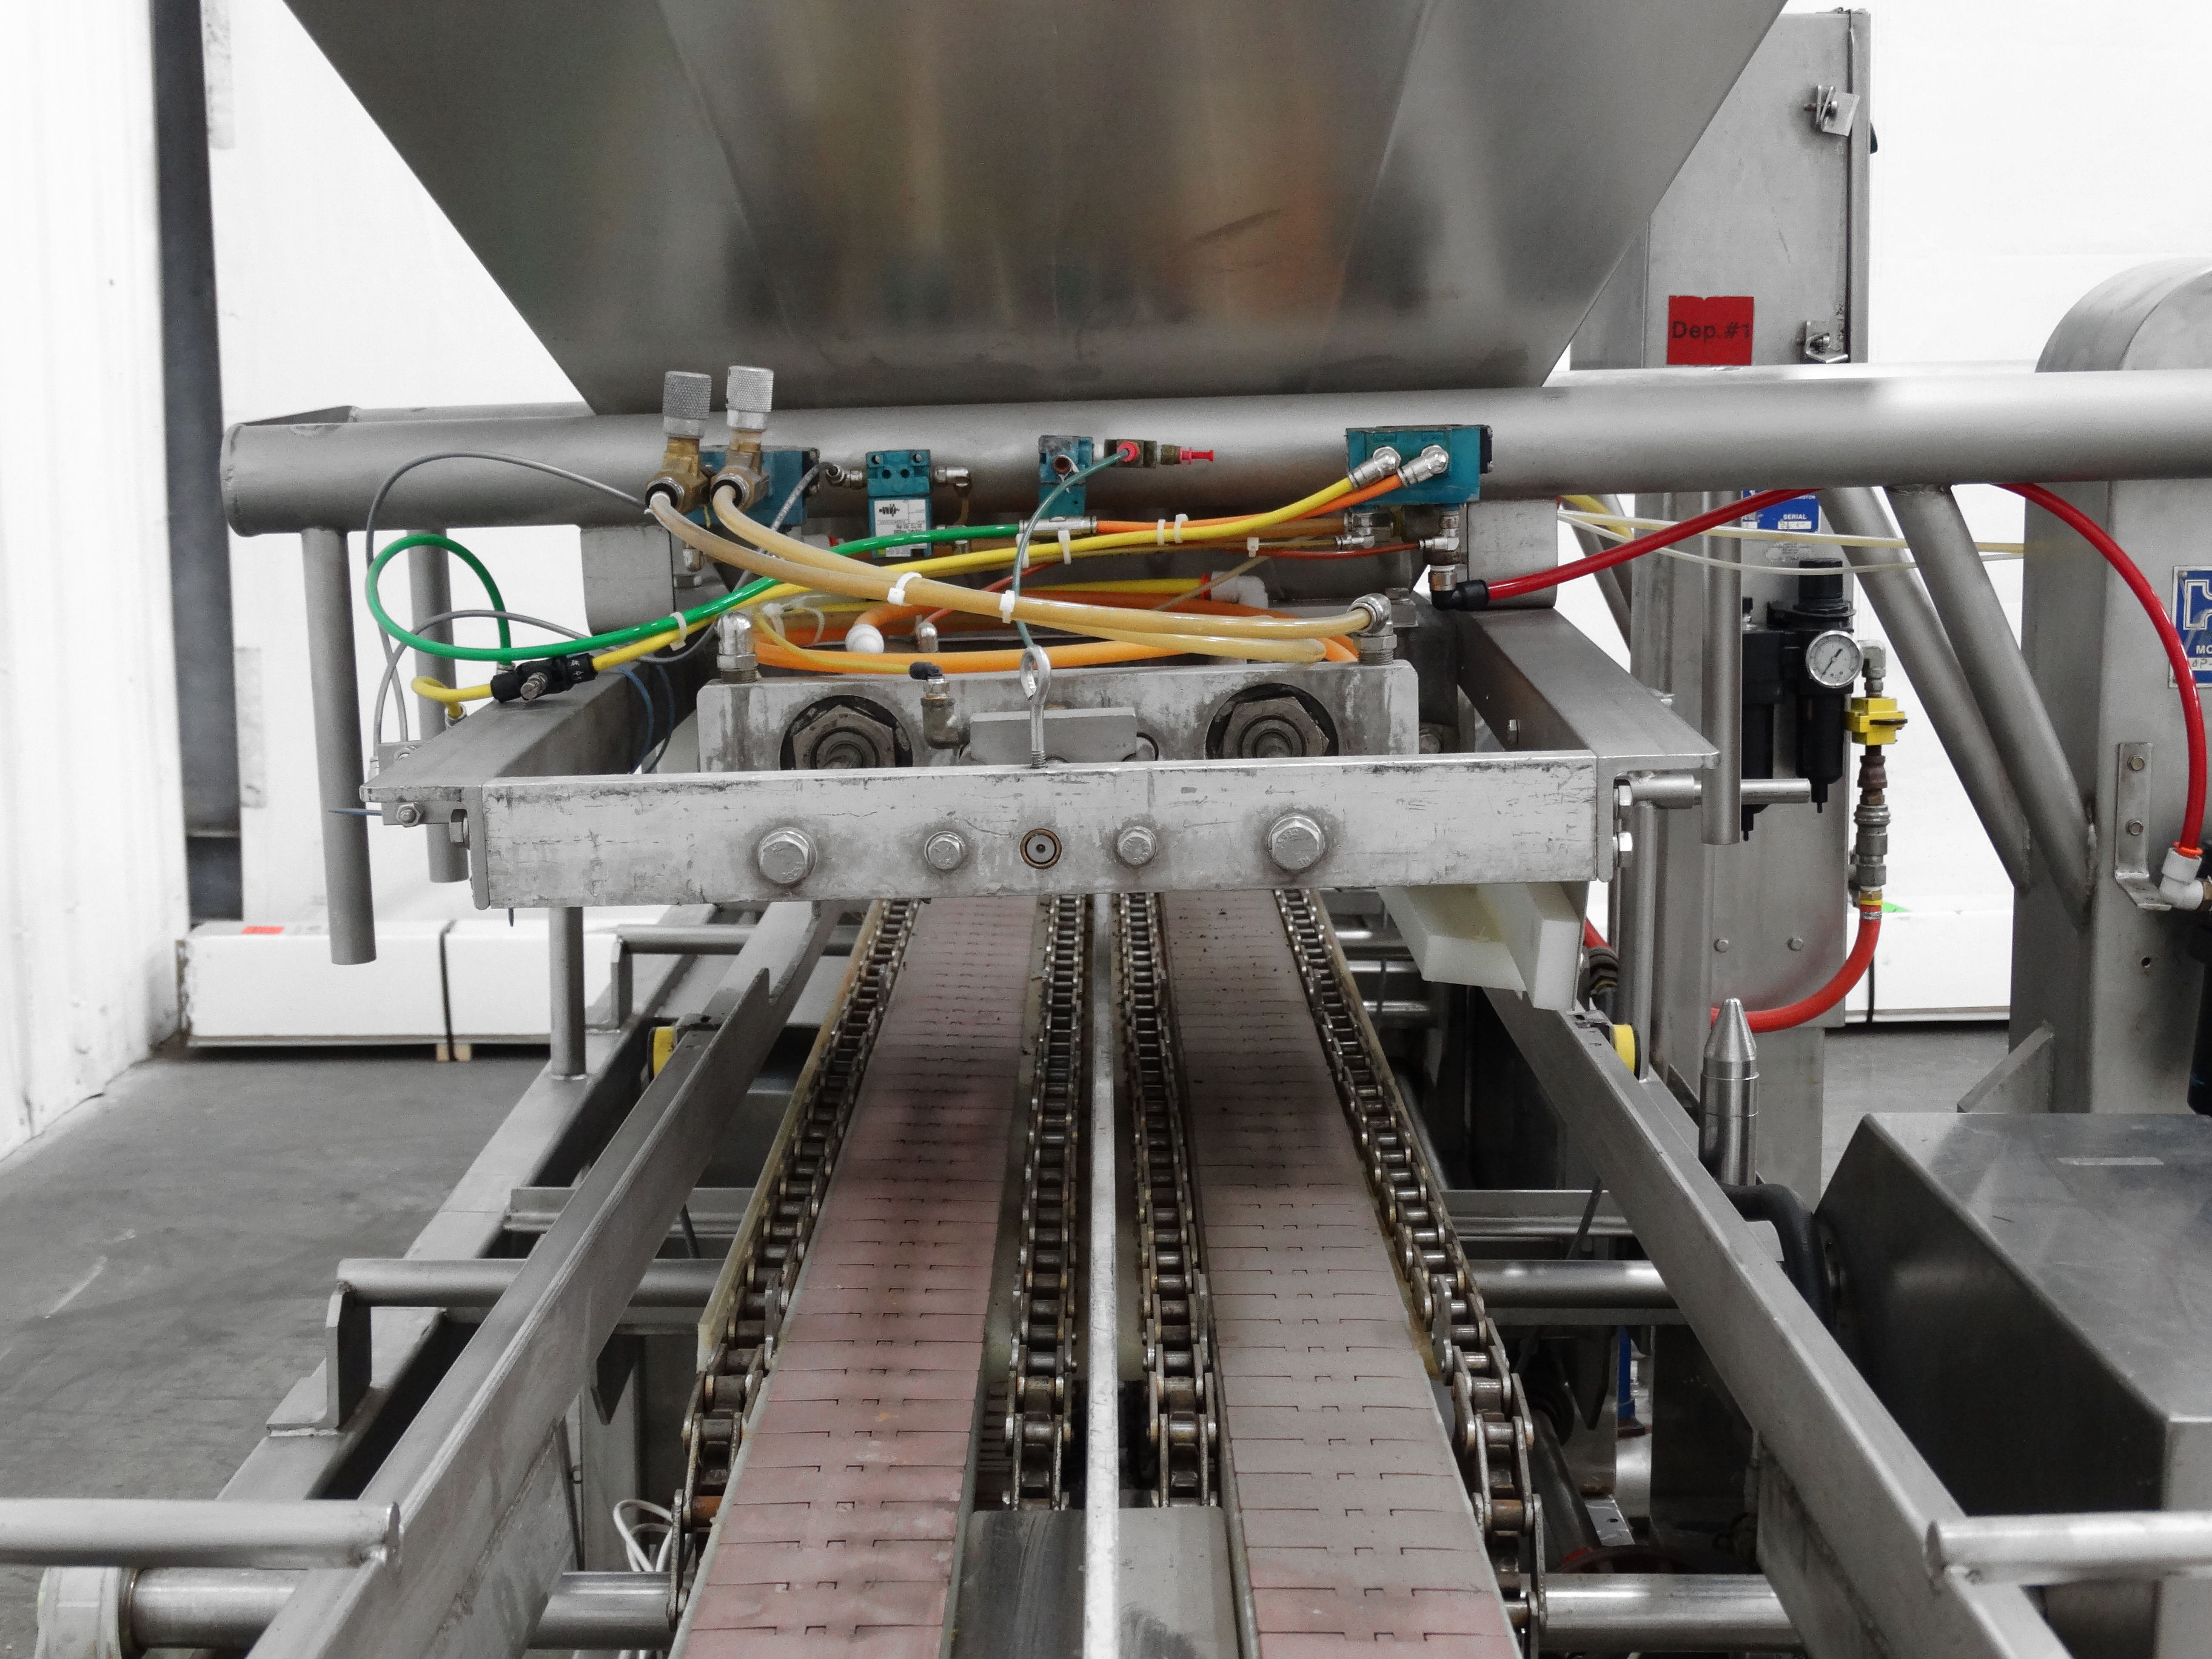 Hinds-Bock Dual Depositor 4P-04 Cheesecake Line B5001 - Image 5 of 8